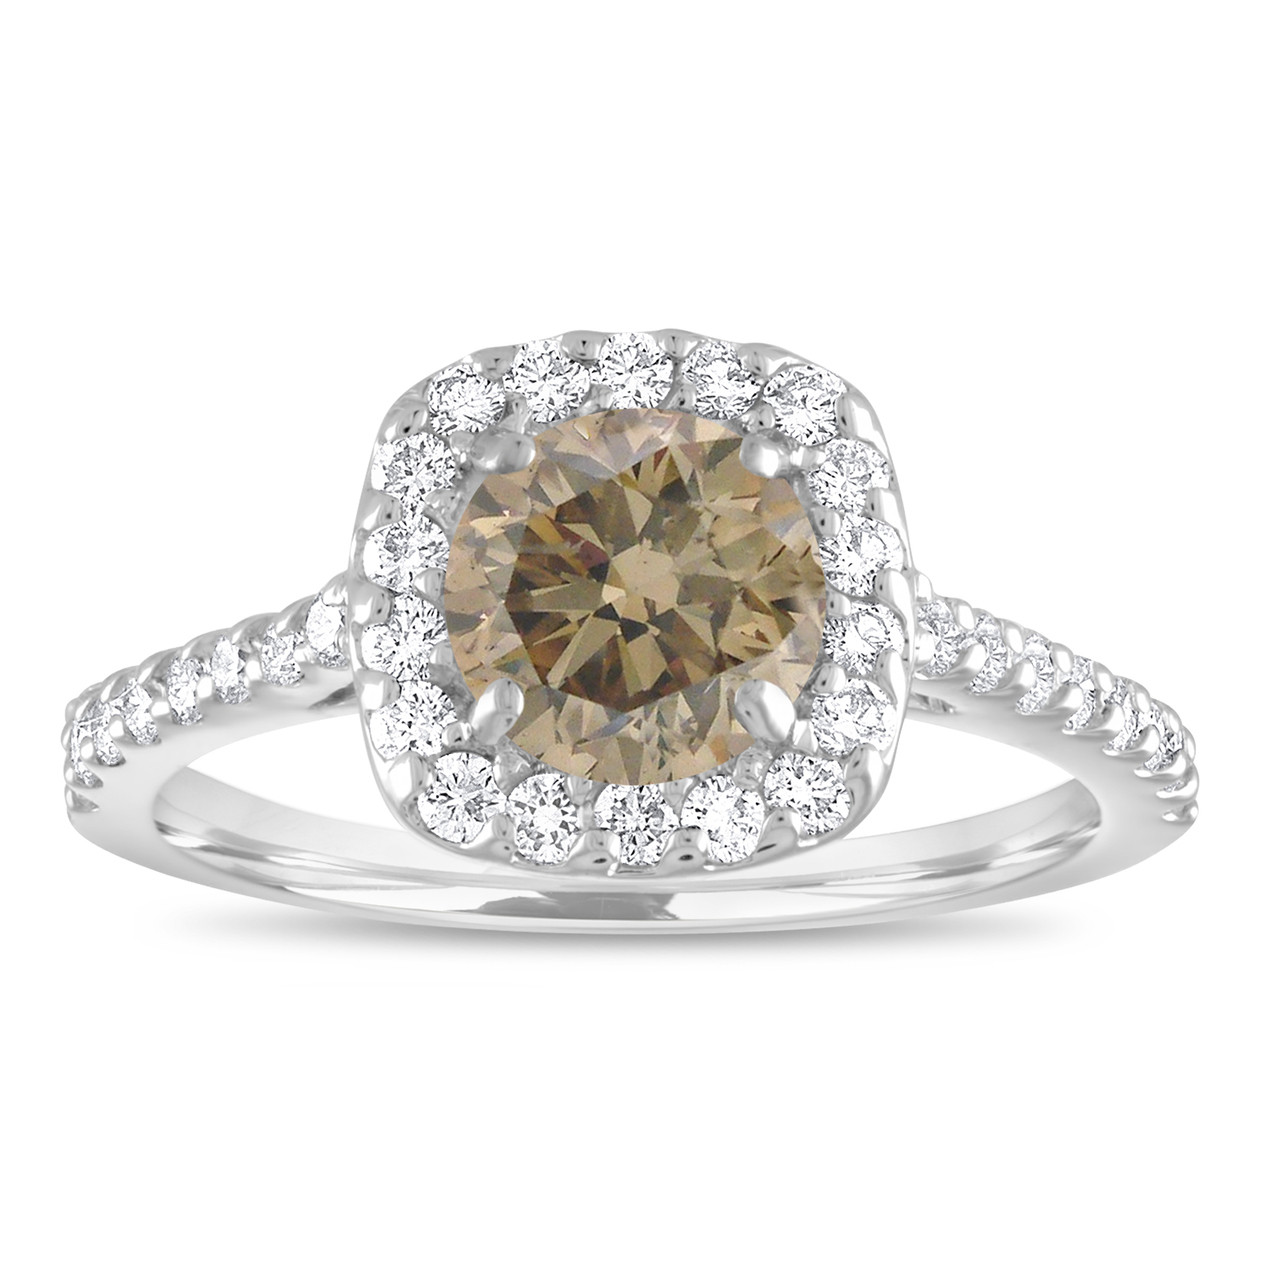 0372dc25329c6 Platinum Engagement Ring, Champagne Diamond Bridal Ring, Fancy Brown  Diamond Ring, Halo Pave 1.58 Carat Unique Certified Handmade